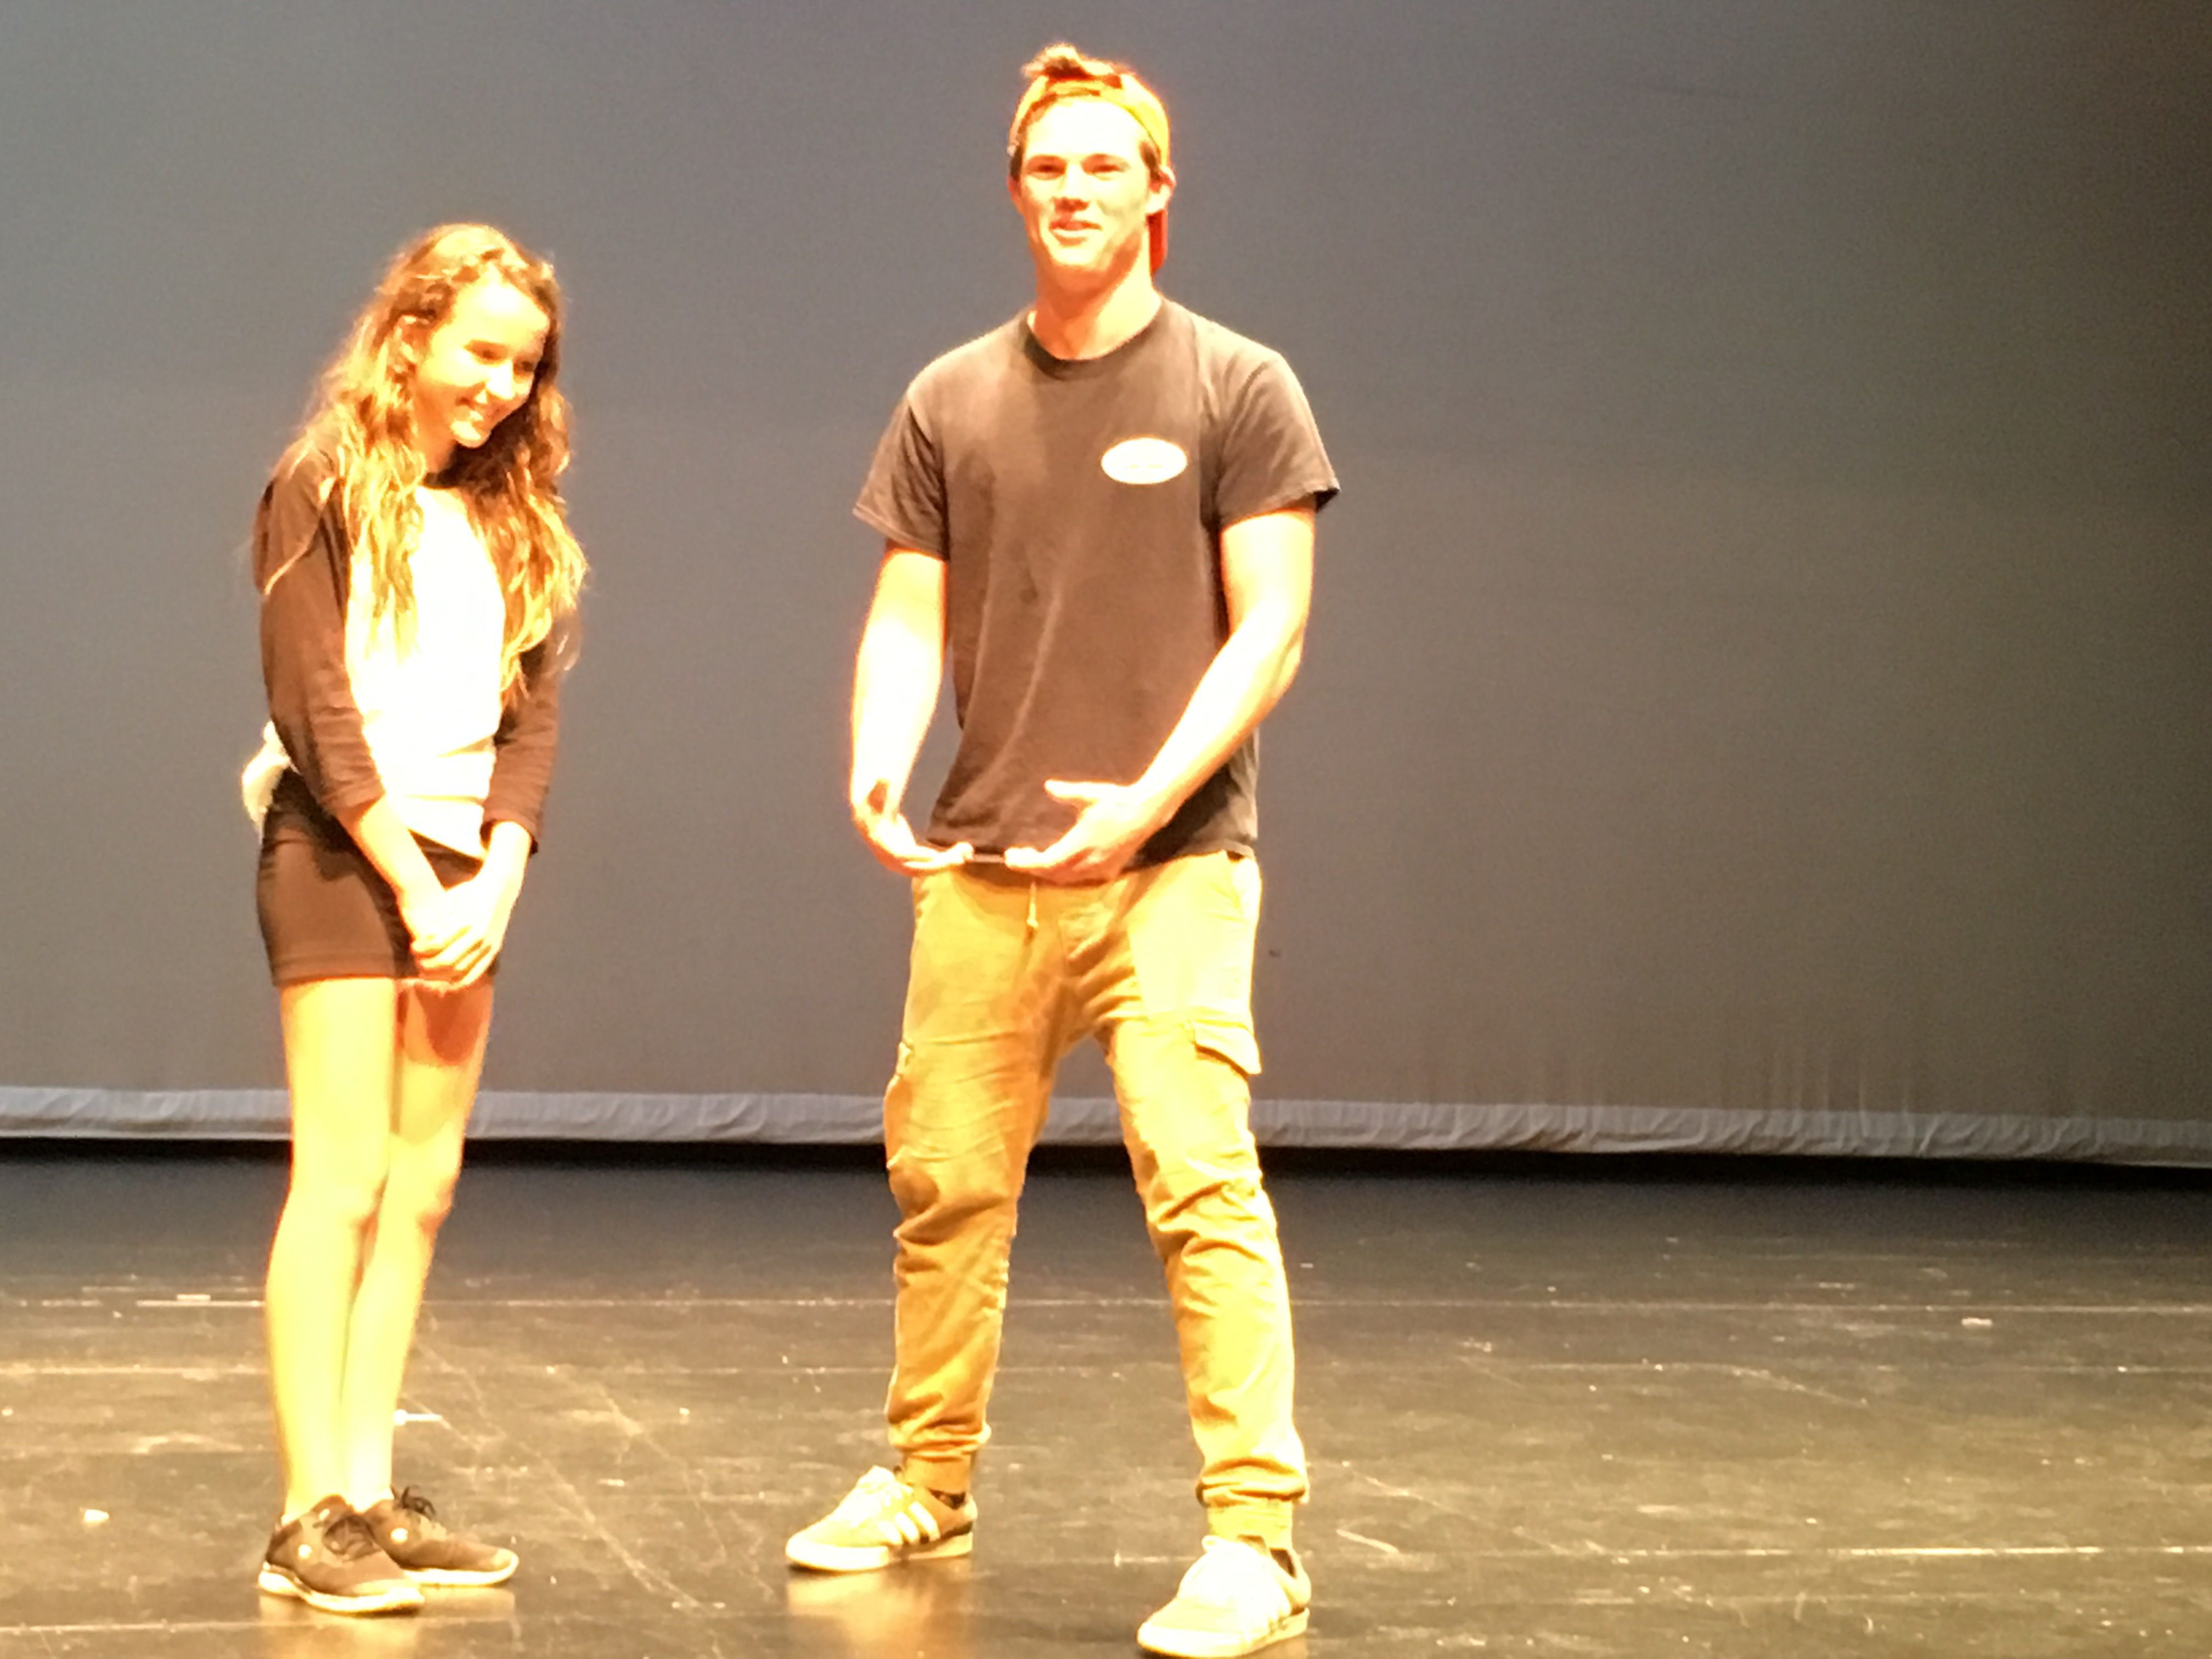 Rehearsal Games in Theater Productions